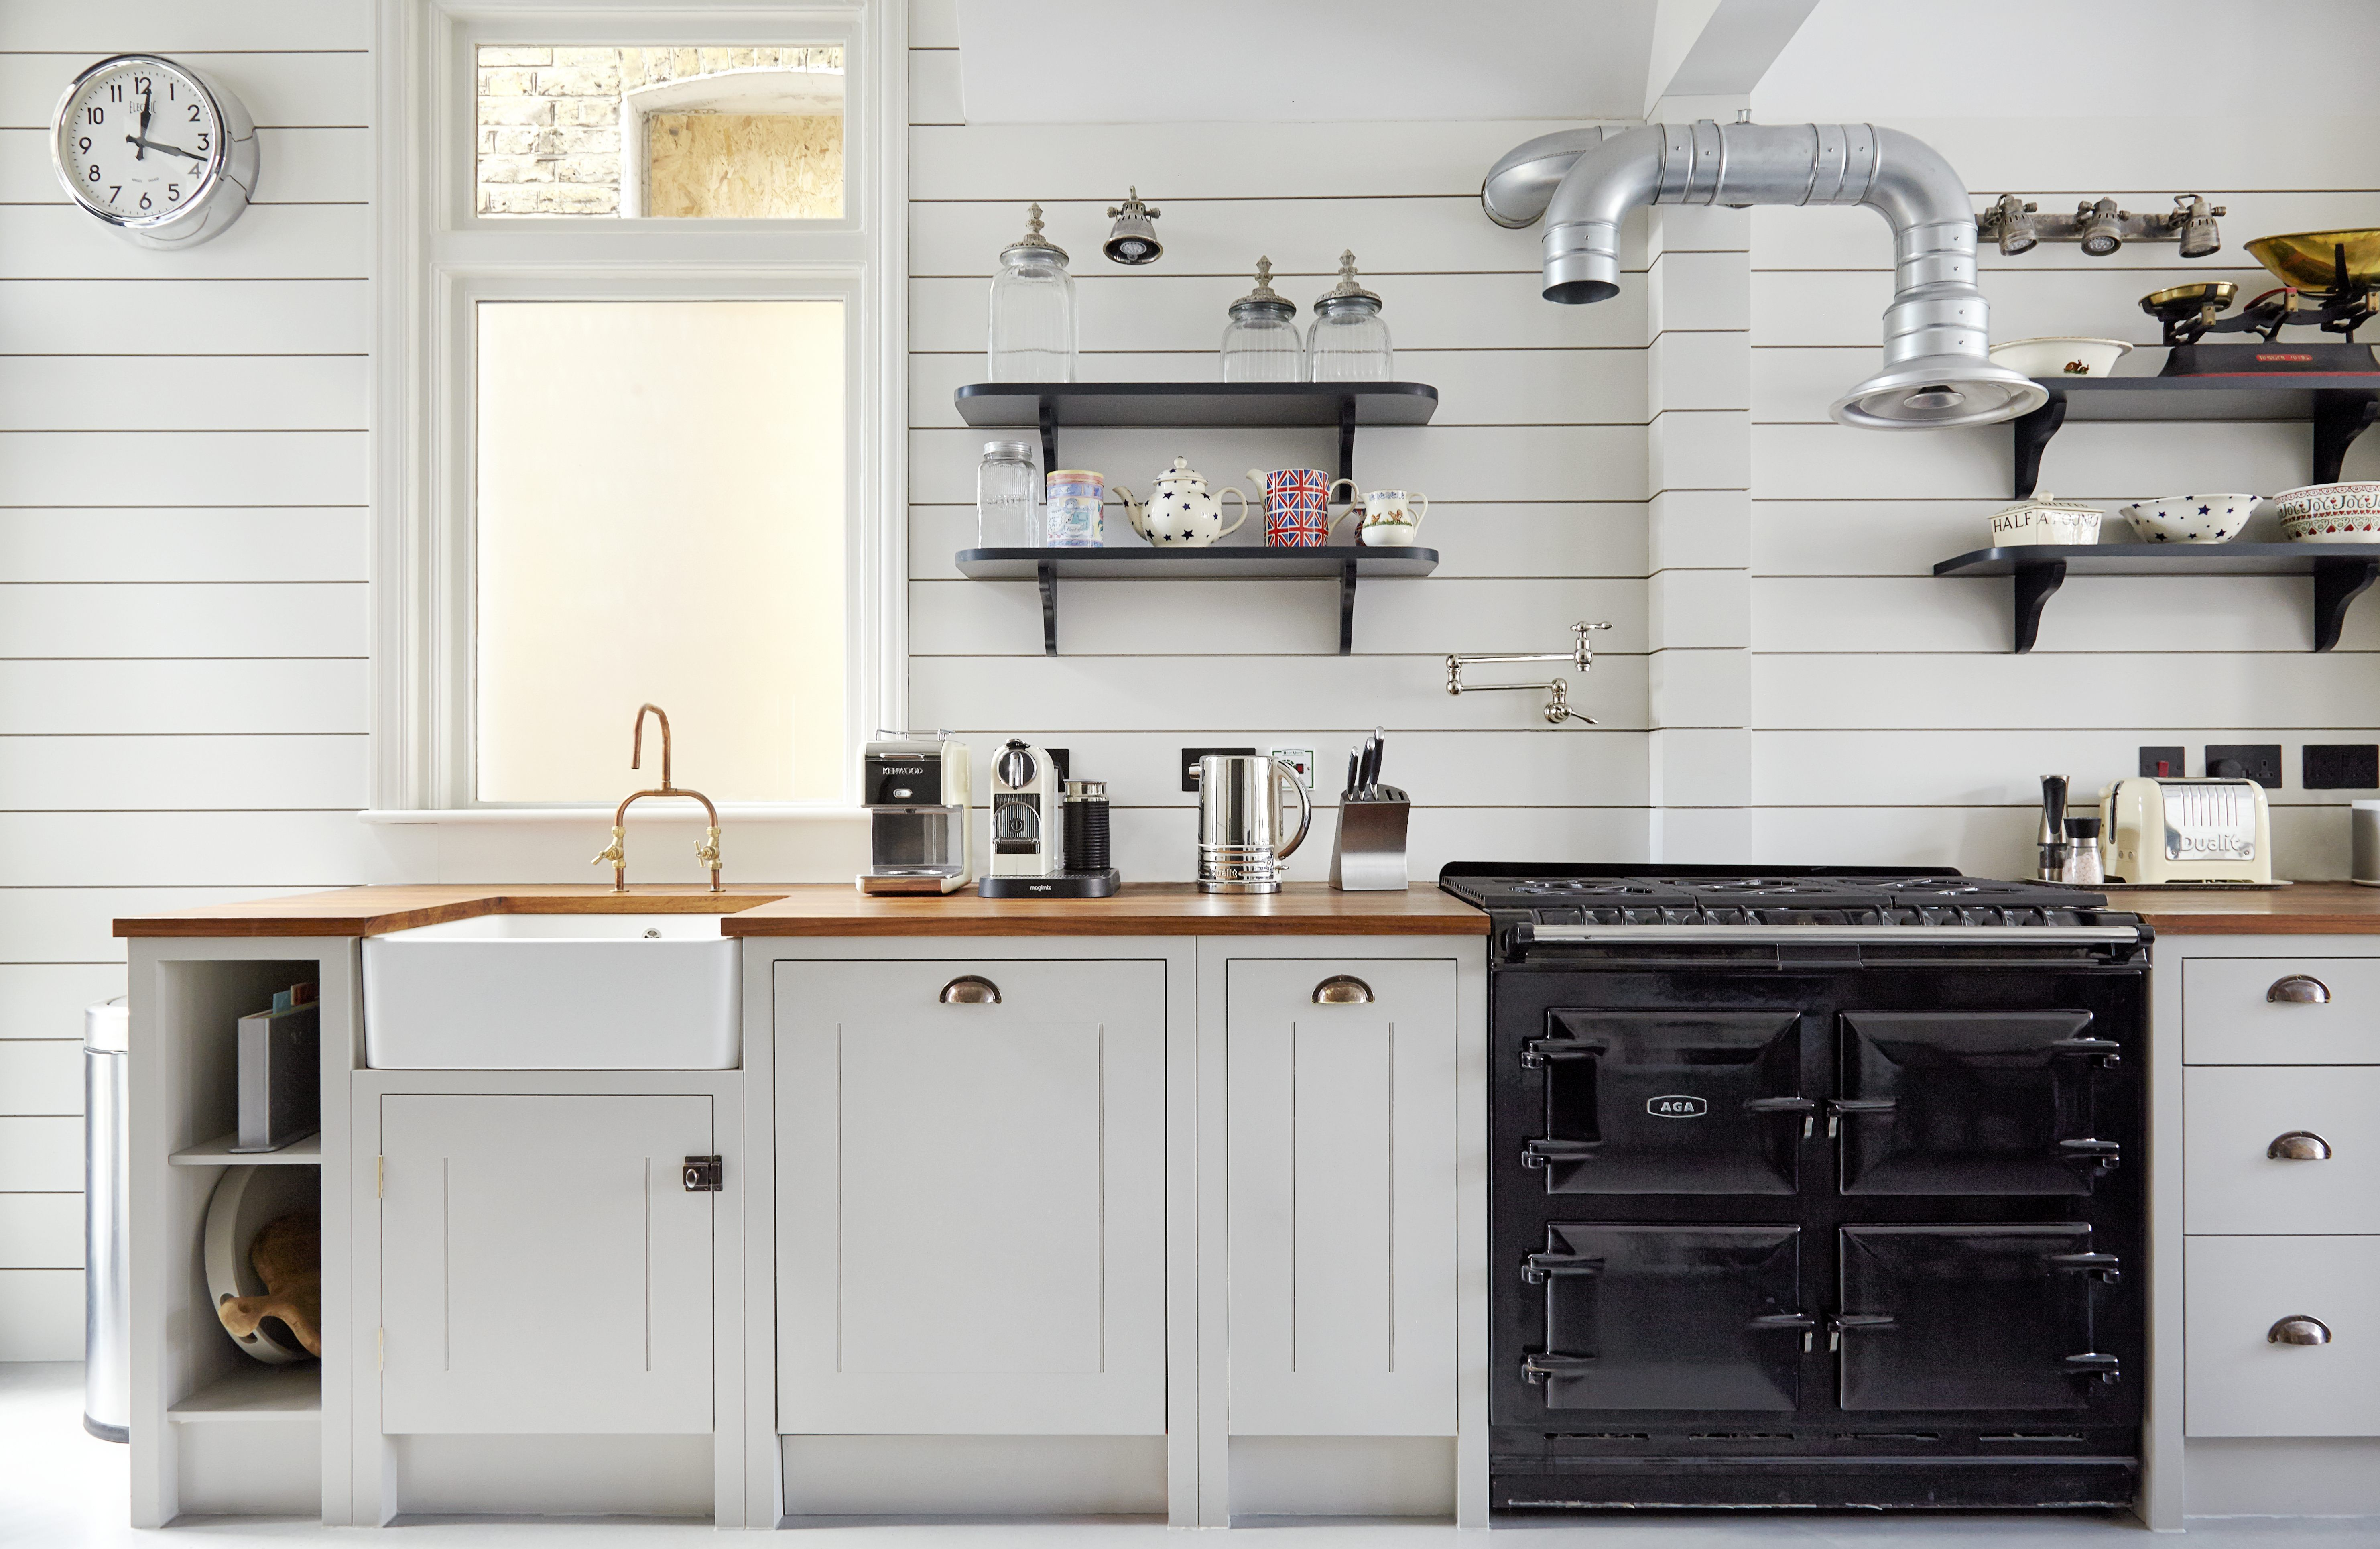 Shiplap wood paneling in a classic English kitchen remodel | Shiplap ...